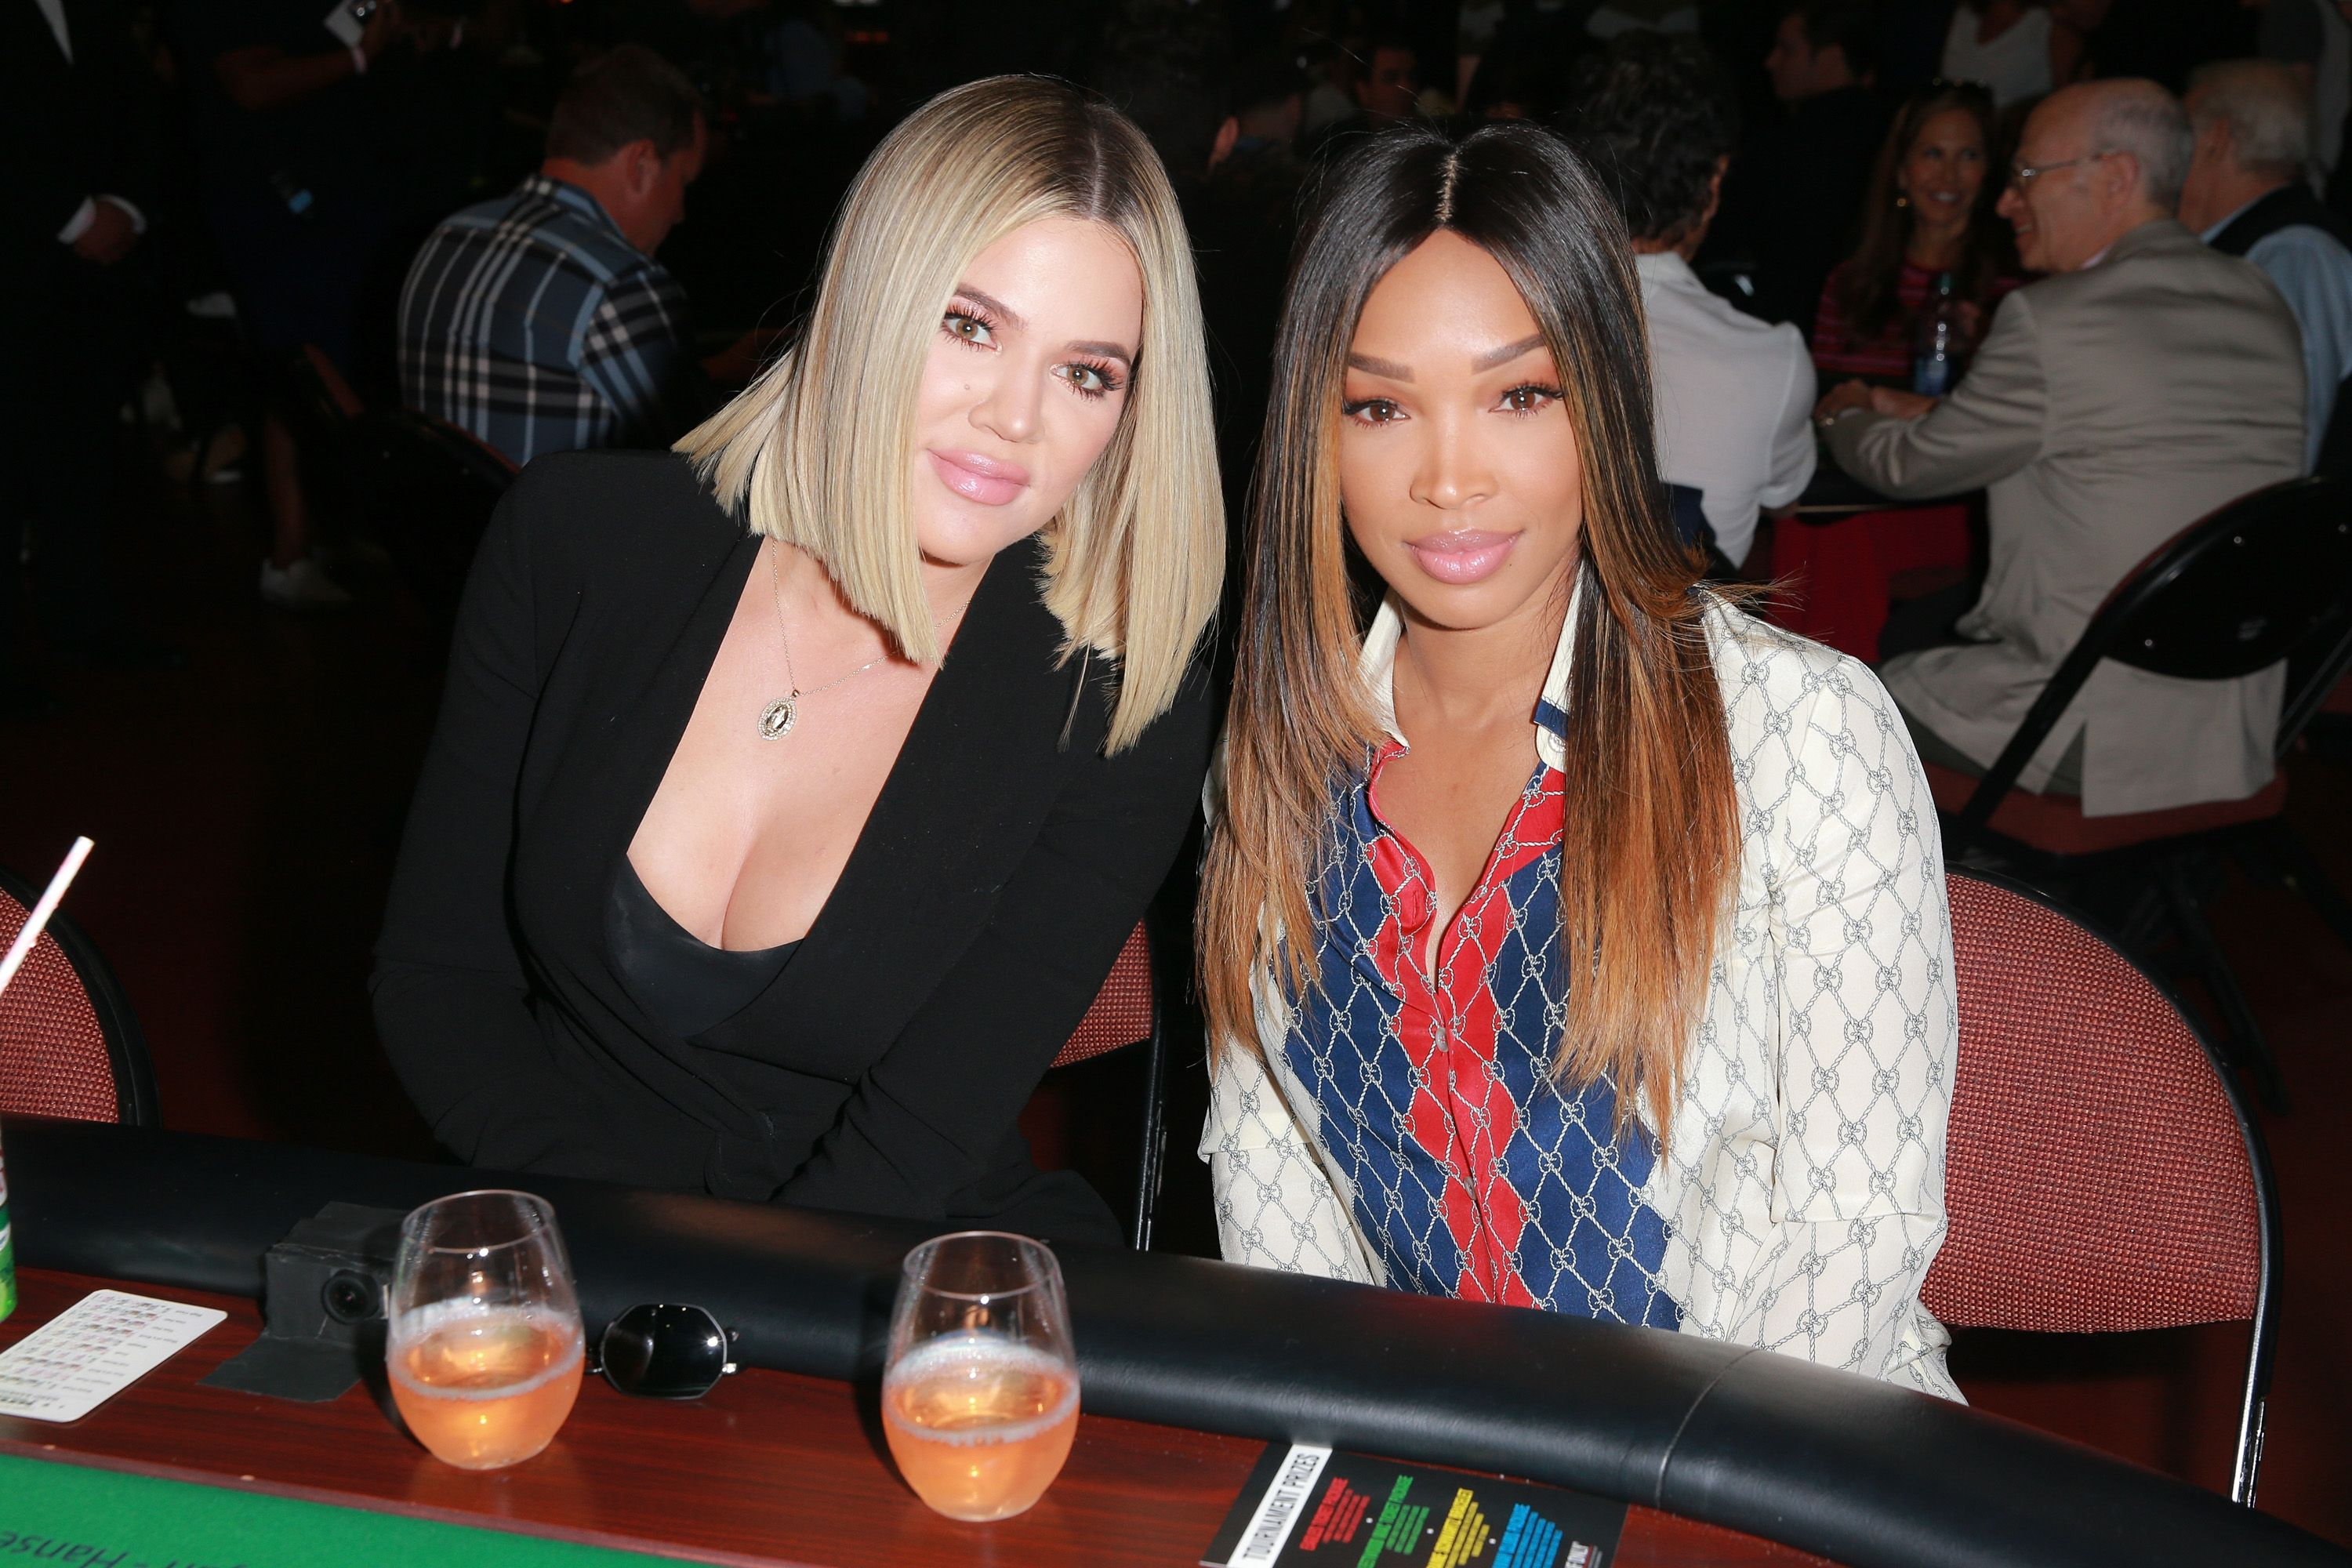 """Khloe Kardashian & Malika Haqq at the first annual """"If Only"""" Texas hold'em charity poker tournament on July 29, 2018 in California. 